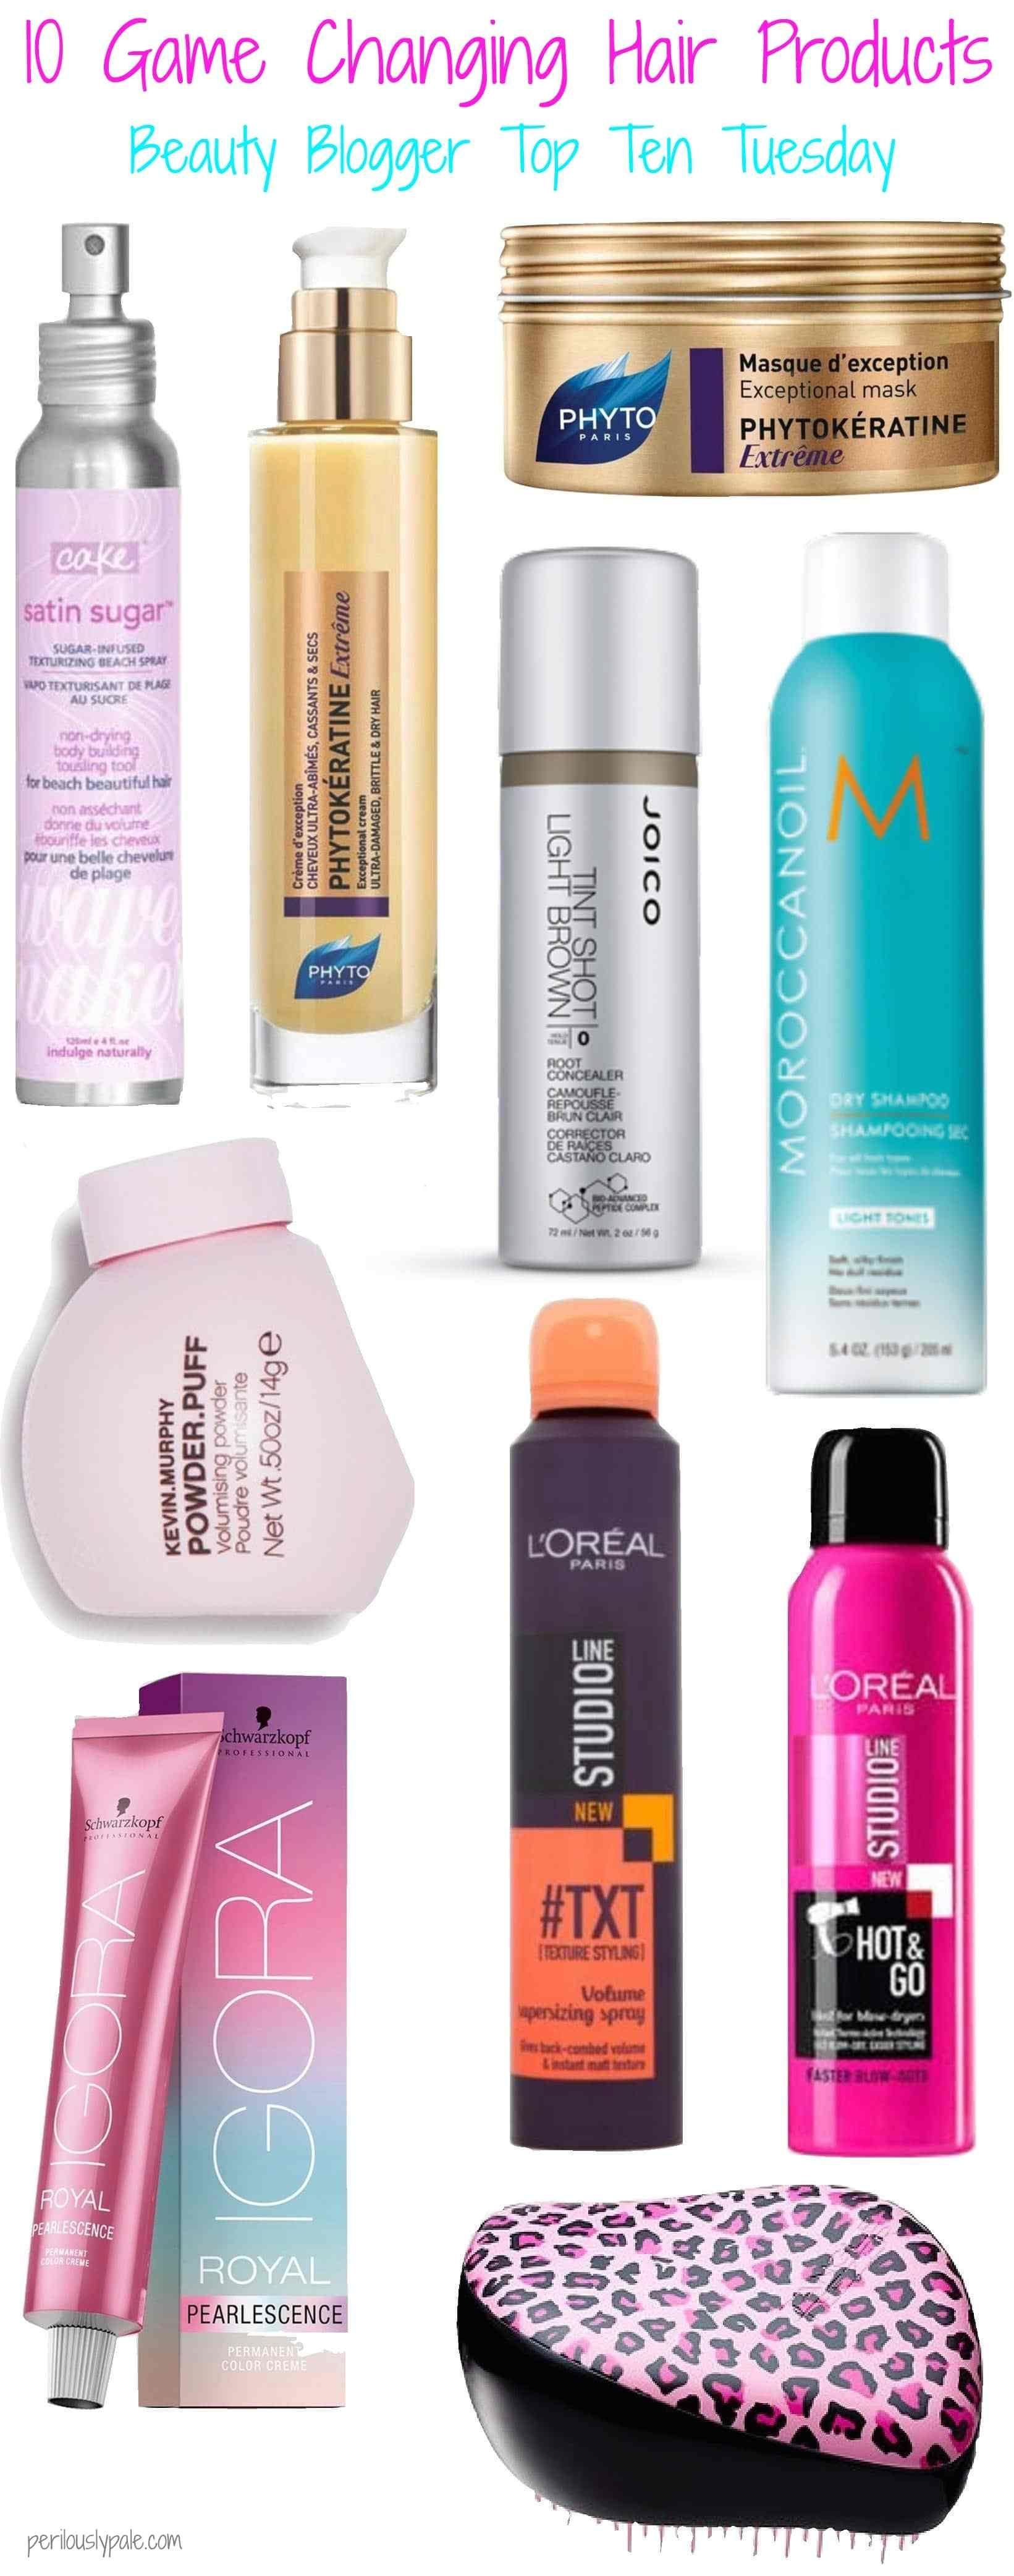 The Best 10 Game Changing Hair Products • Realizing Beauty Pictures